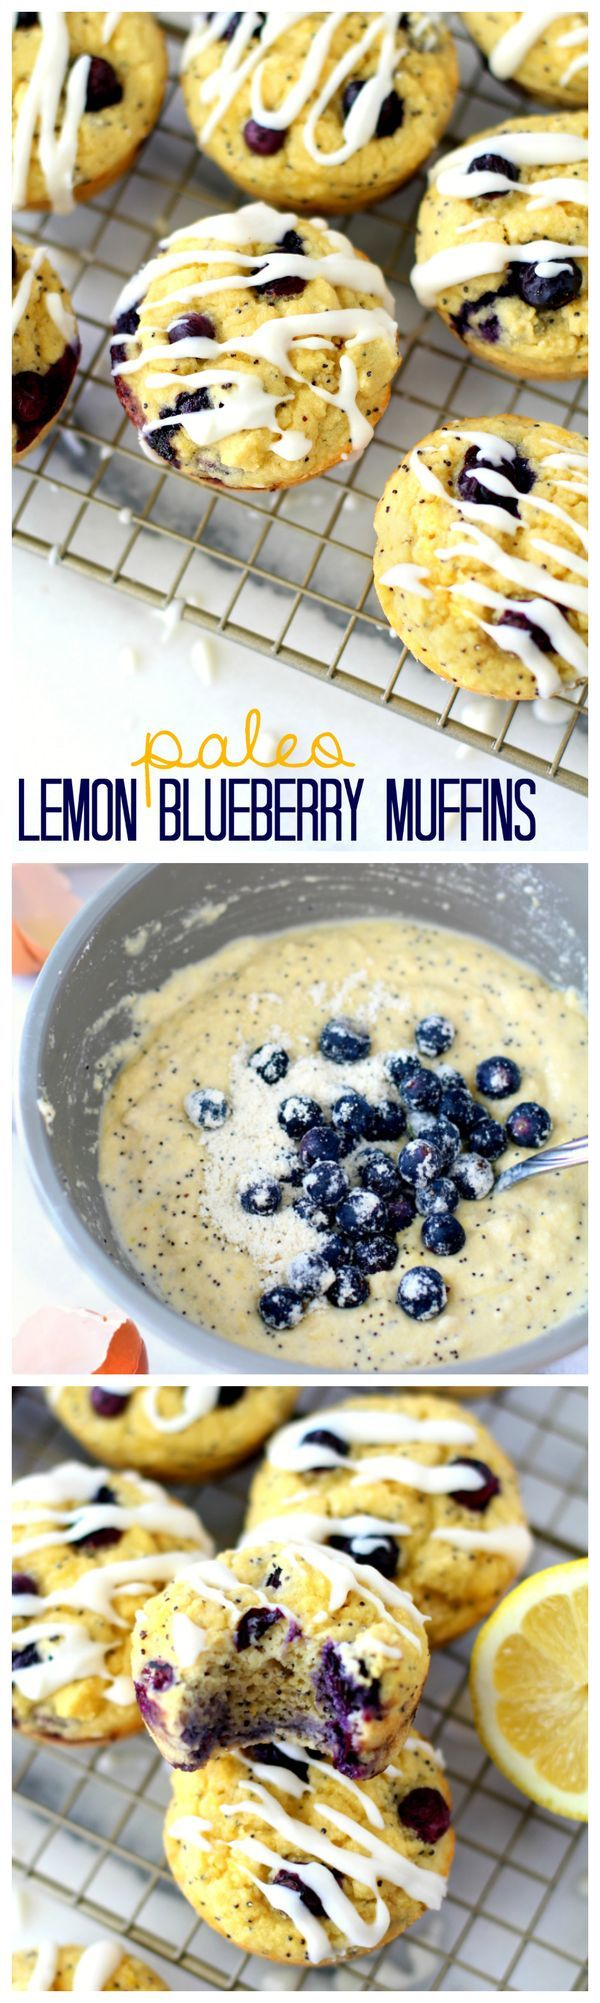 Paleo Lemon Blueberry Muffins - Moist and flavorful healthy blueberry muffins made w/ @bobsredmill & w/out refined sugar or butter. No one will ever be able to tell that these muffins are better for you! {BobsSpringBaking AD}